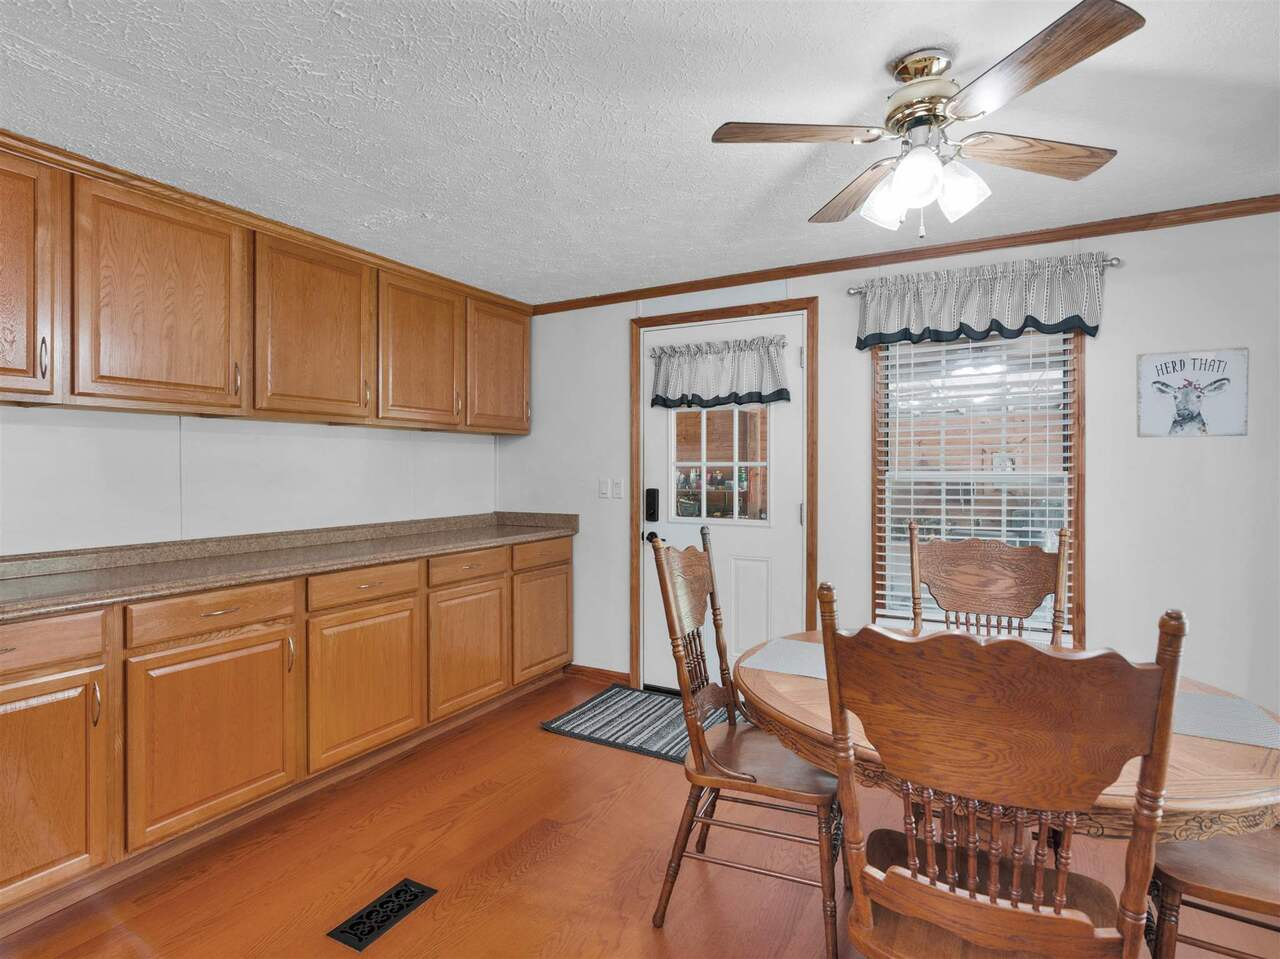 258 Country Kitchen Road Property Photo 8